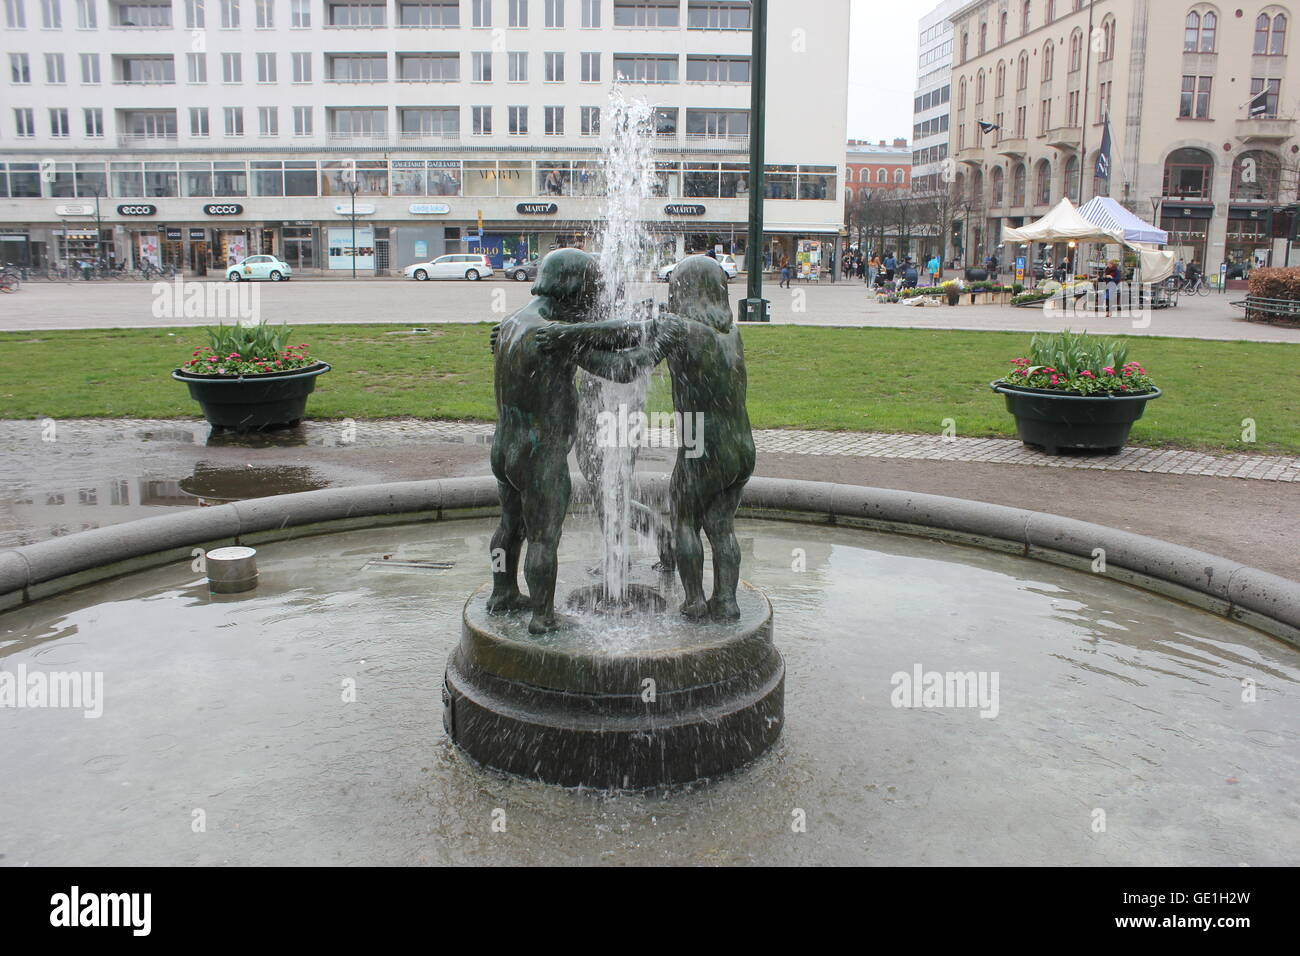 31fe0d5b20e5 Gustav Adolf's Square (Gustav Adolfs torg) with statues and fountains in  Malmö, Sweden